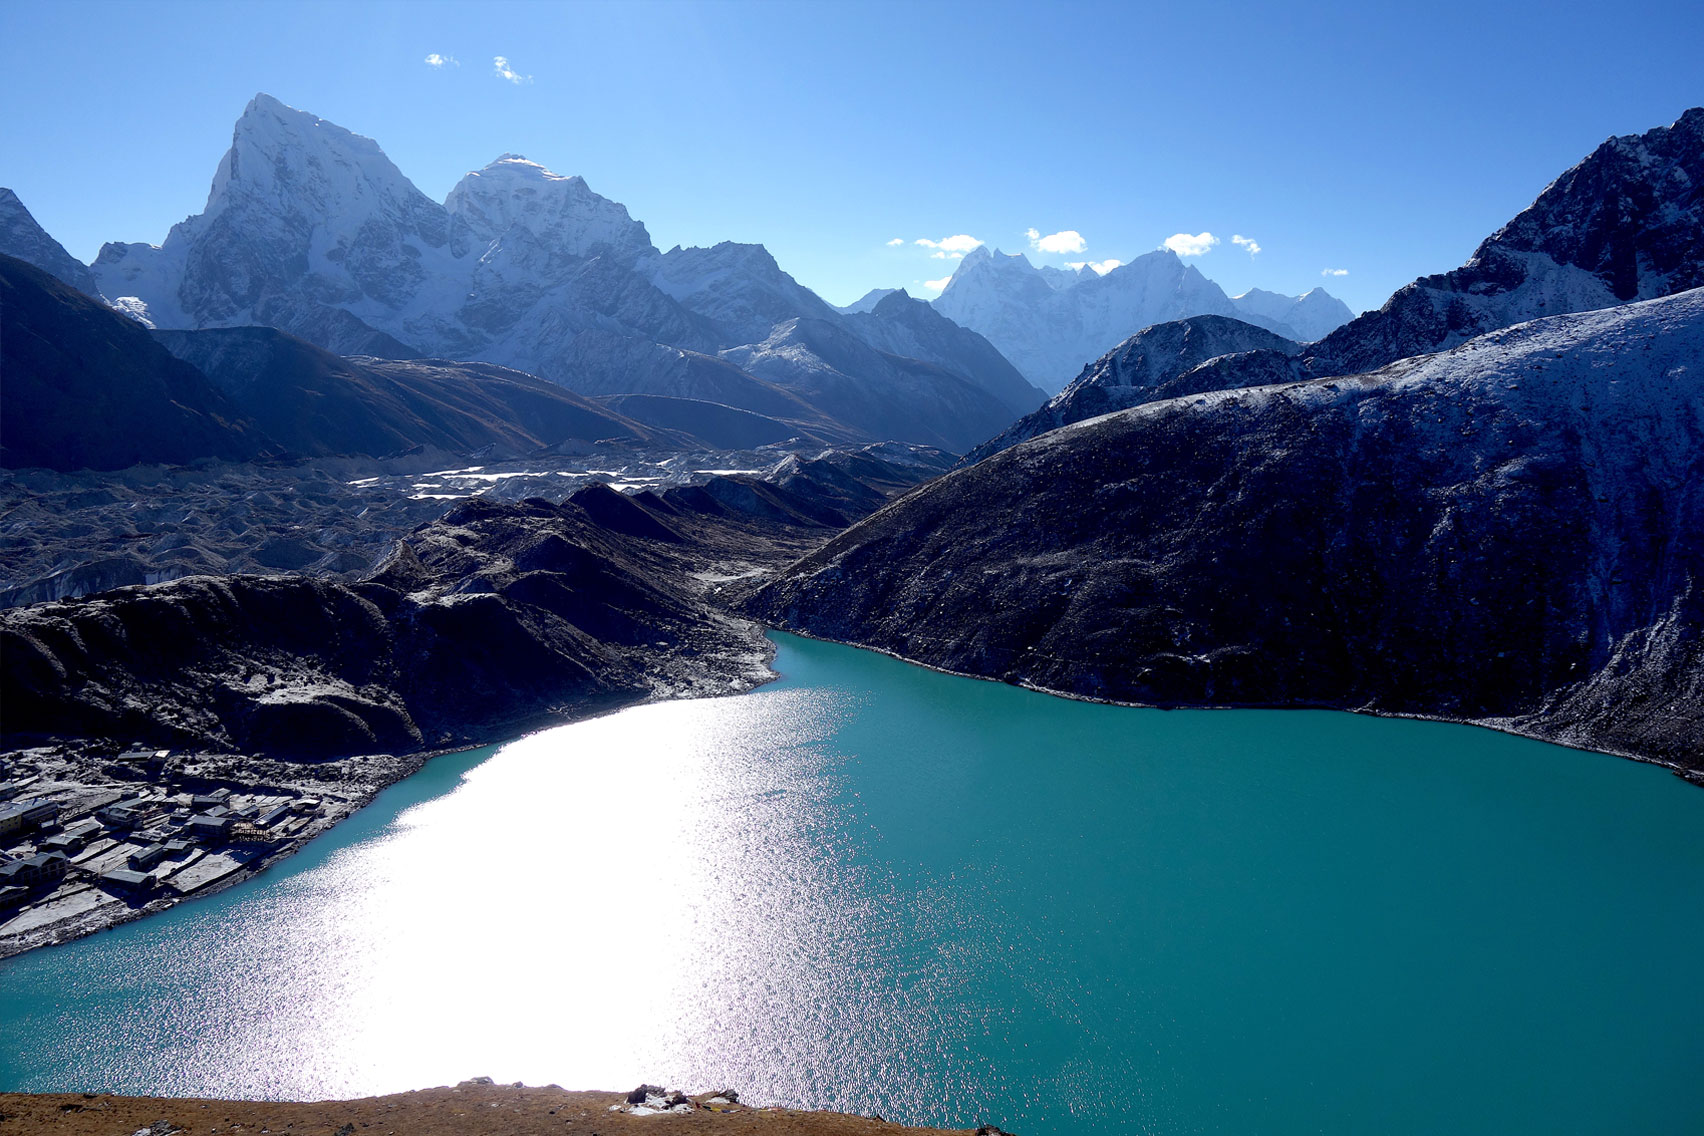 Day 10: Ascent of Gokyo Ri and back to Gokyo (4hrs, 5483m)